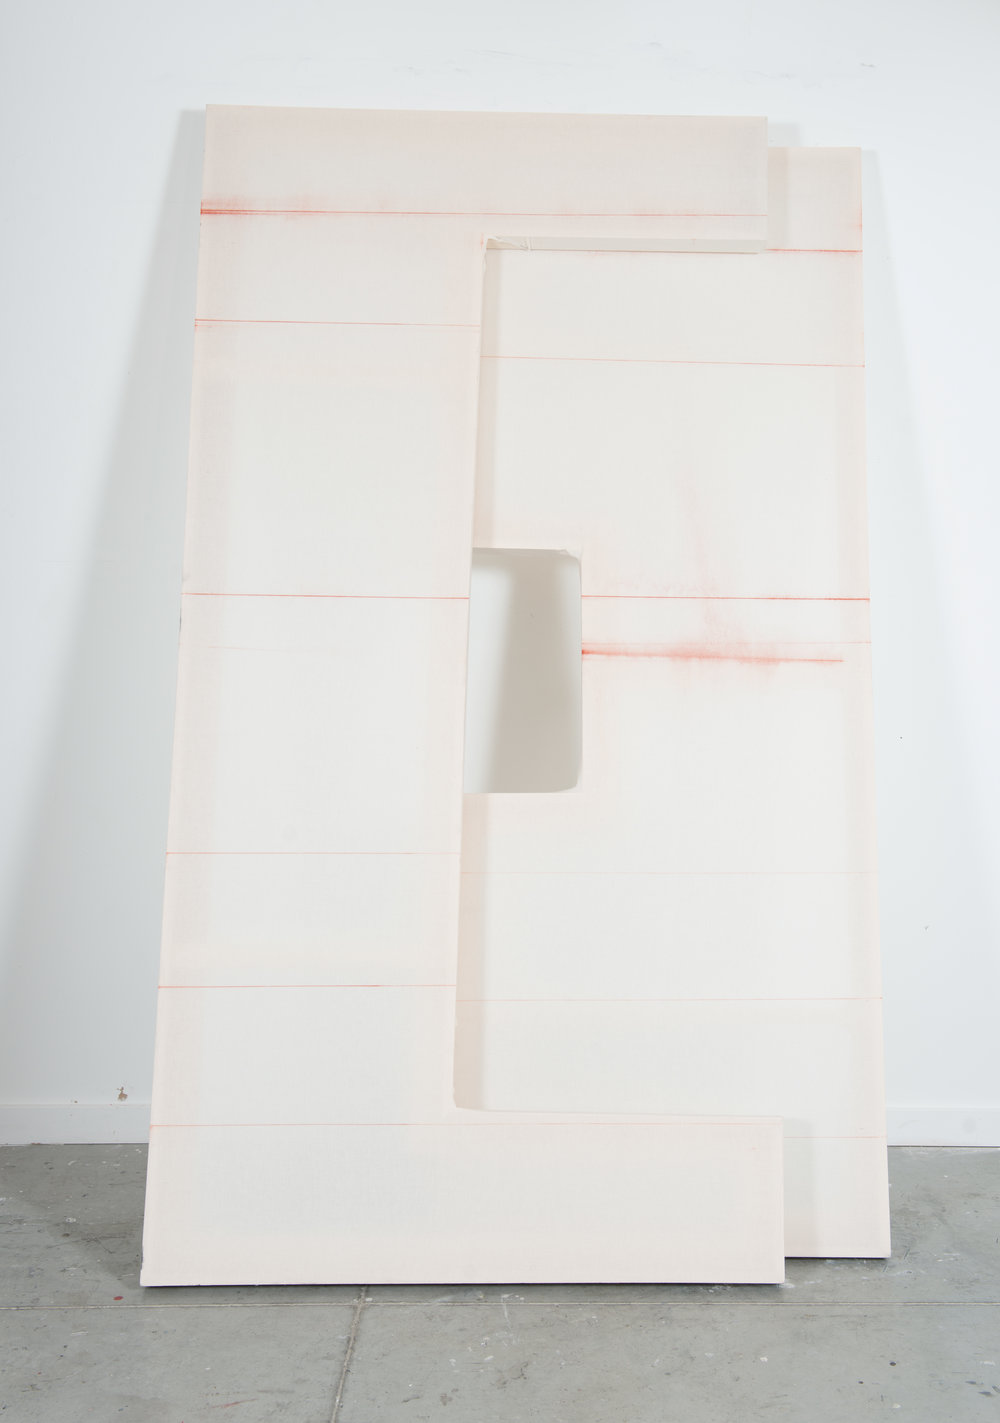 Entirety , 2016, chalk, muslin, wood, 8' X 5' (overall dimensions)